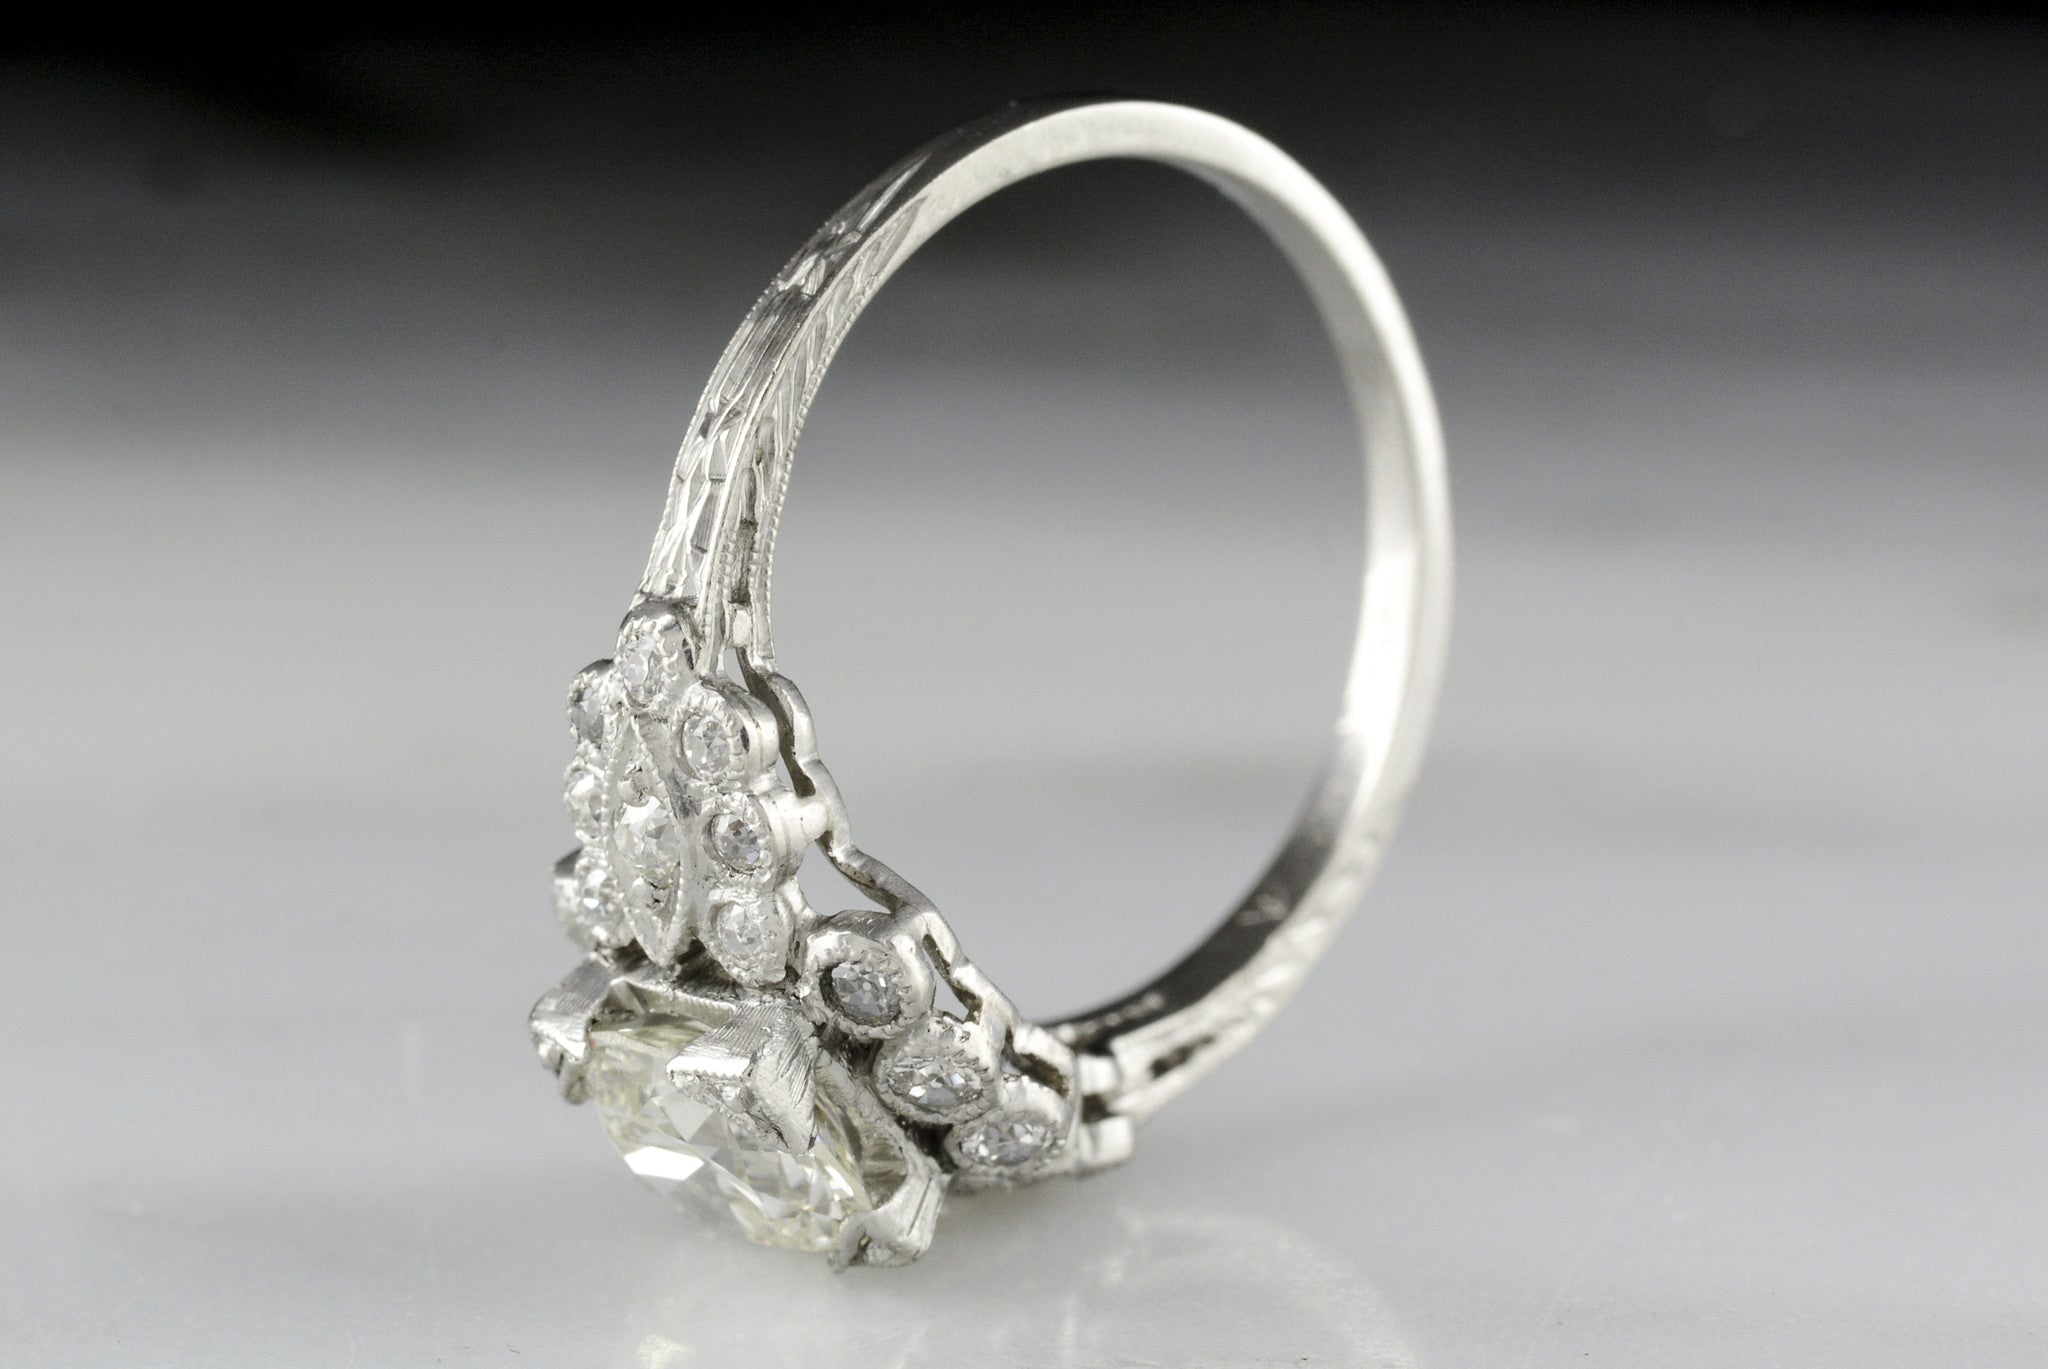 charles strong new moiss br center grey products ps mod c v diamond band moissanite colvard prong engagement ring camille